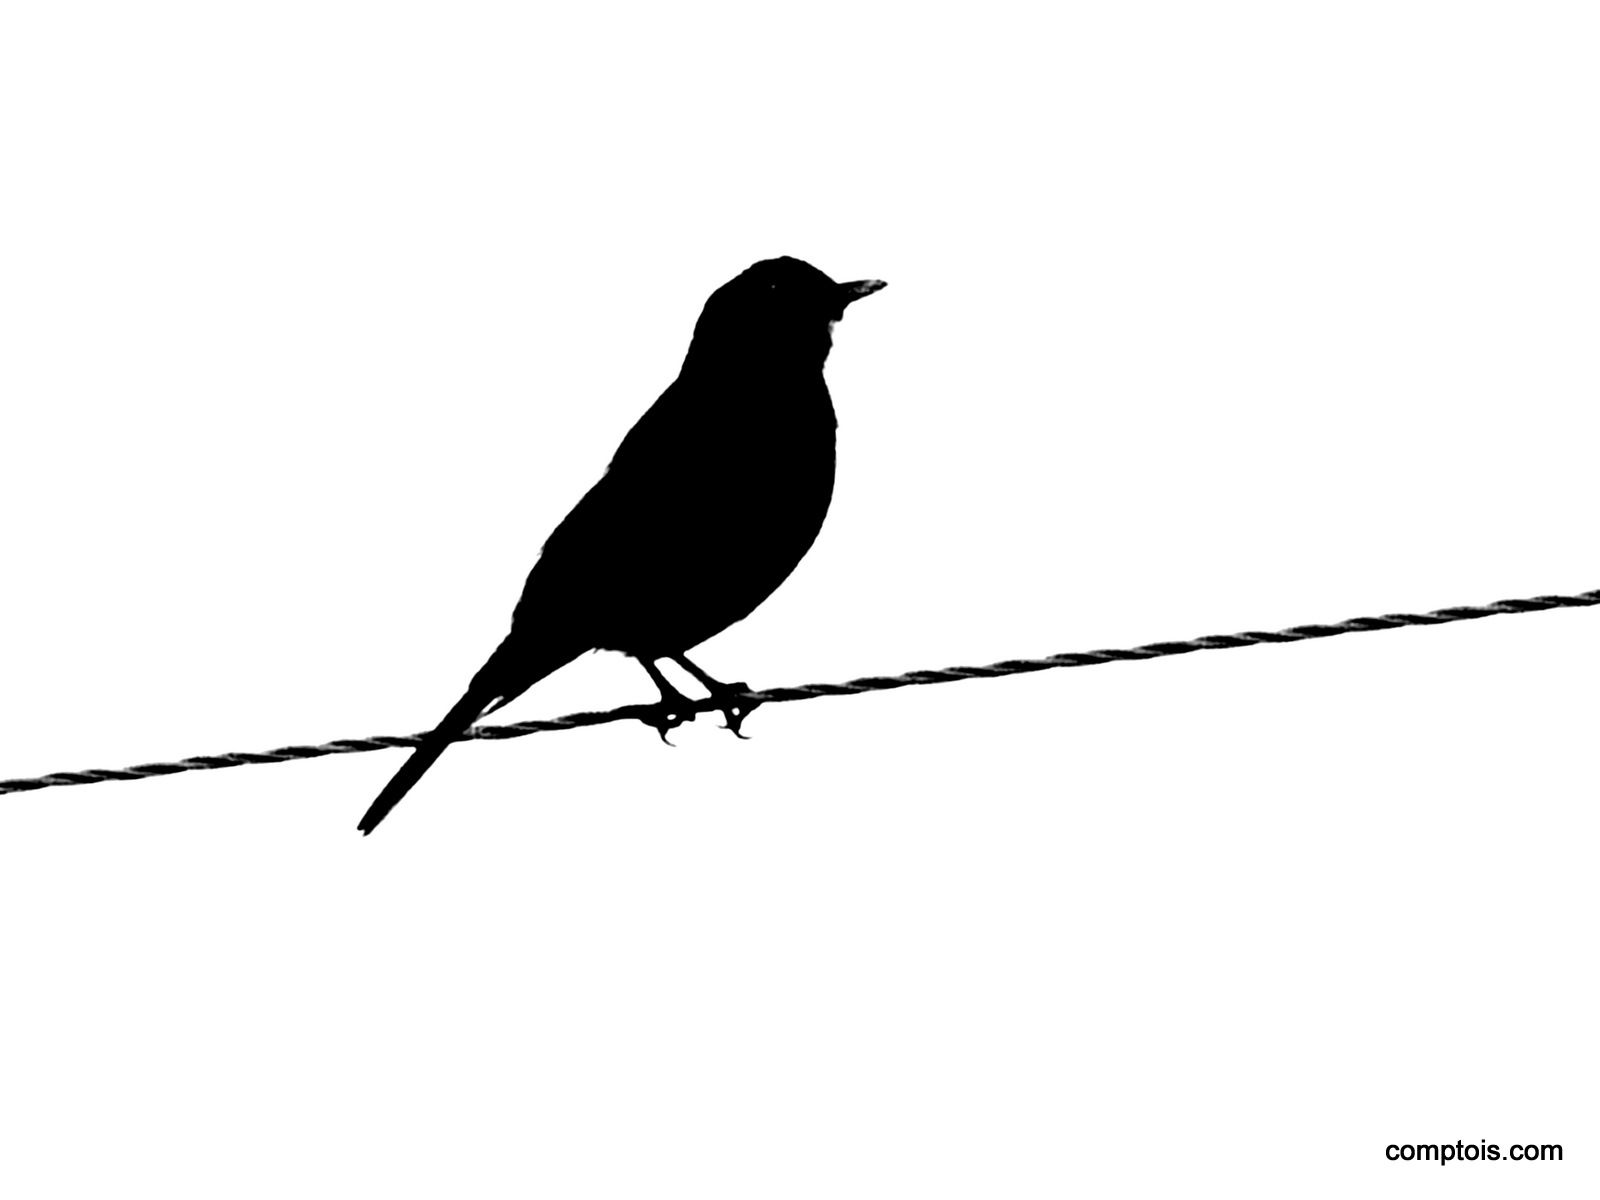 1600x1200 Silhouette Of A Bird Image Above Kind Of Challenges